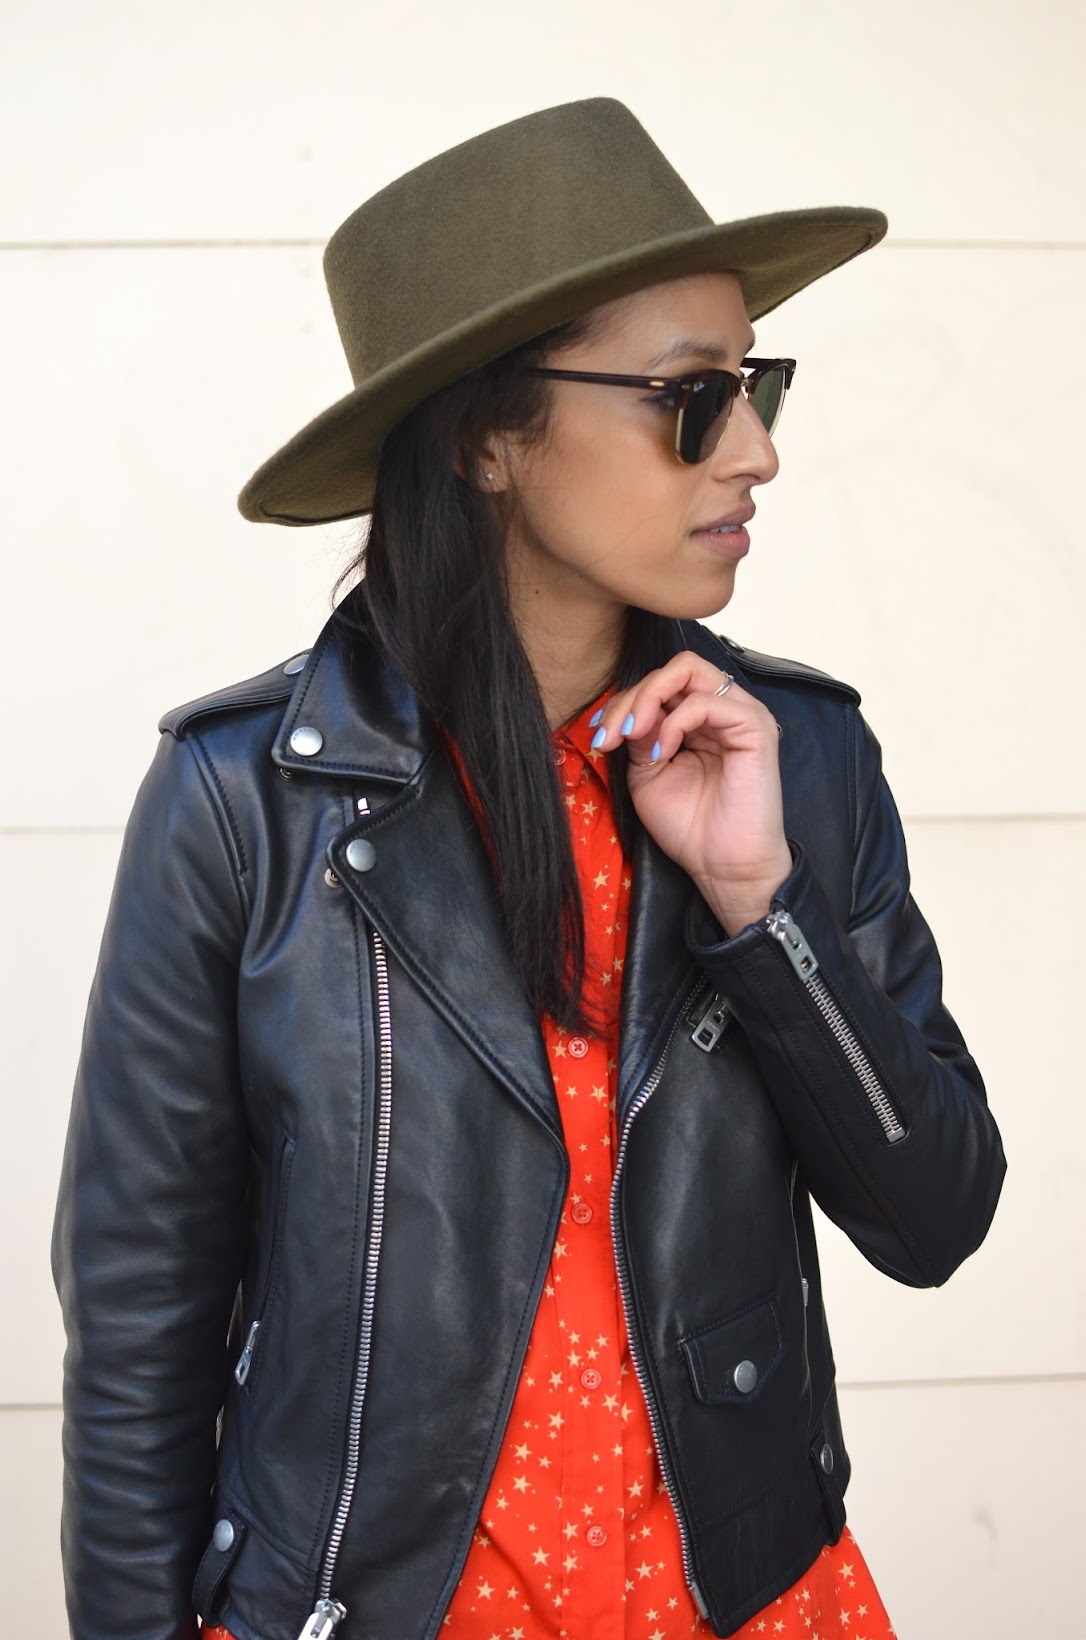 allergic to vanilla, twinkle start shirt, star button up shirt, Goorin Bros fedora, BCBG leather moto jacket, J. Crew toothpick denim, Coach pumps, SF street style